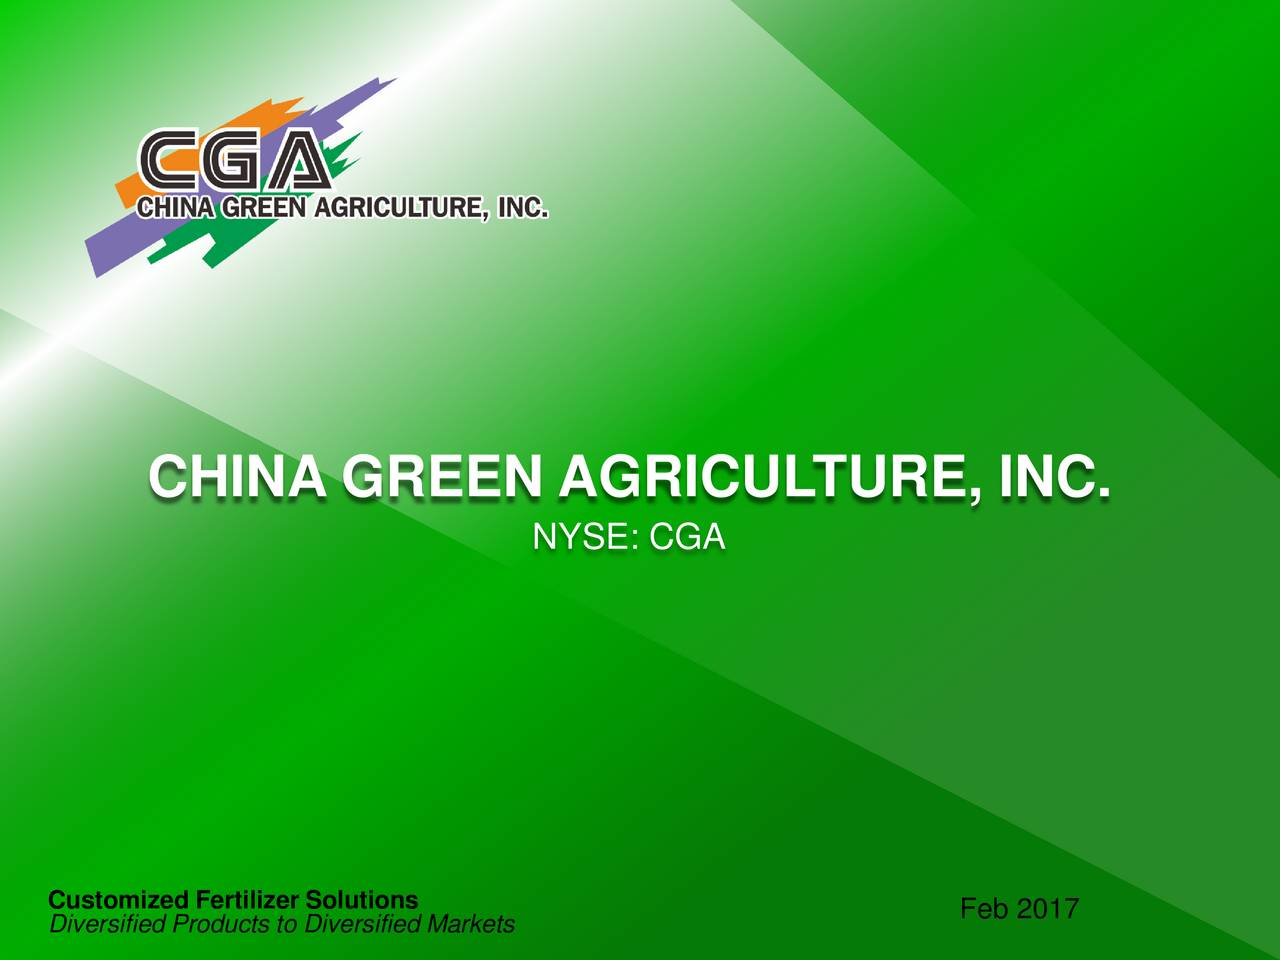 NYSE: CGA Customized Fertilizer Solutions Diversified Products to Diversified Markets Feb 2017